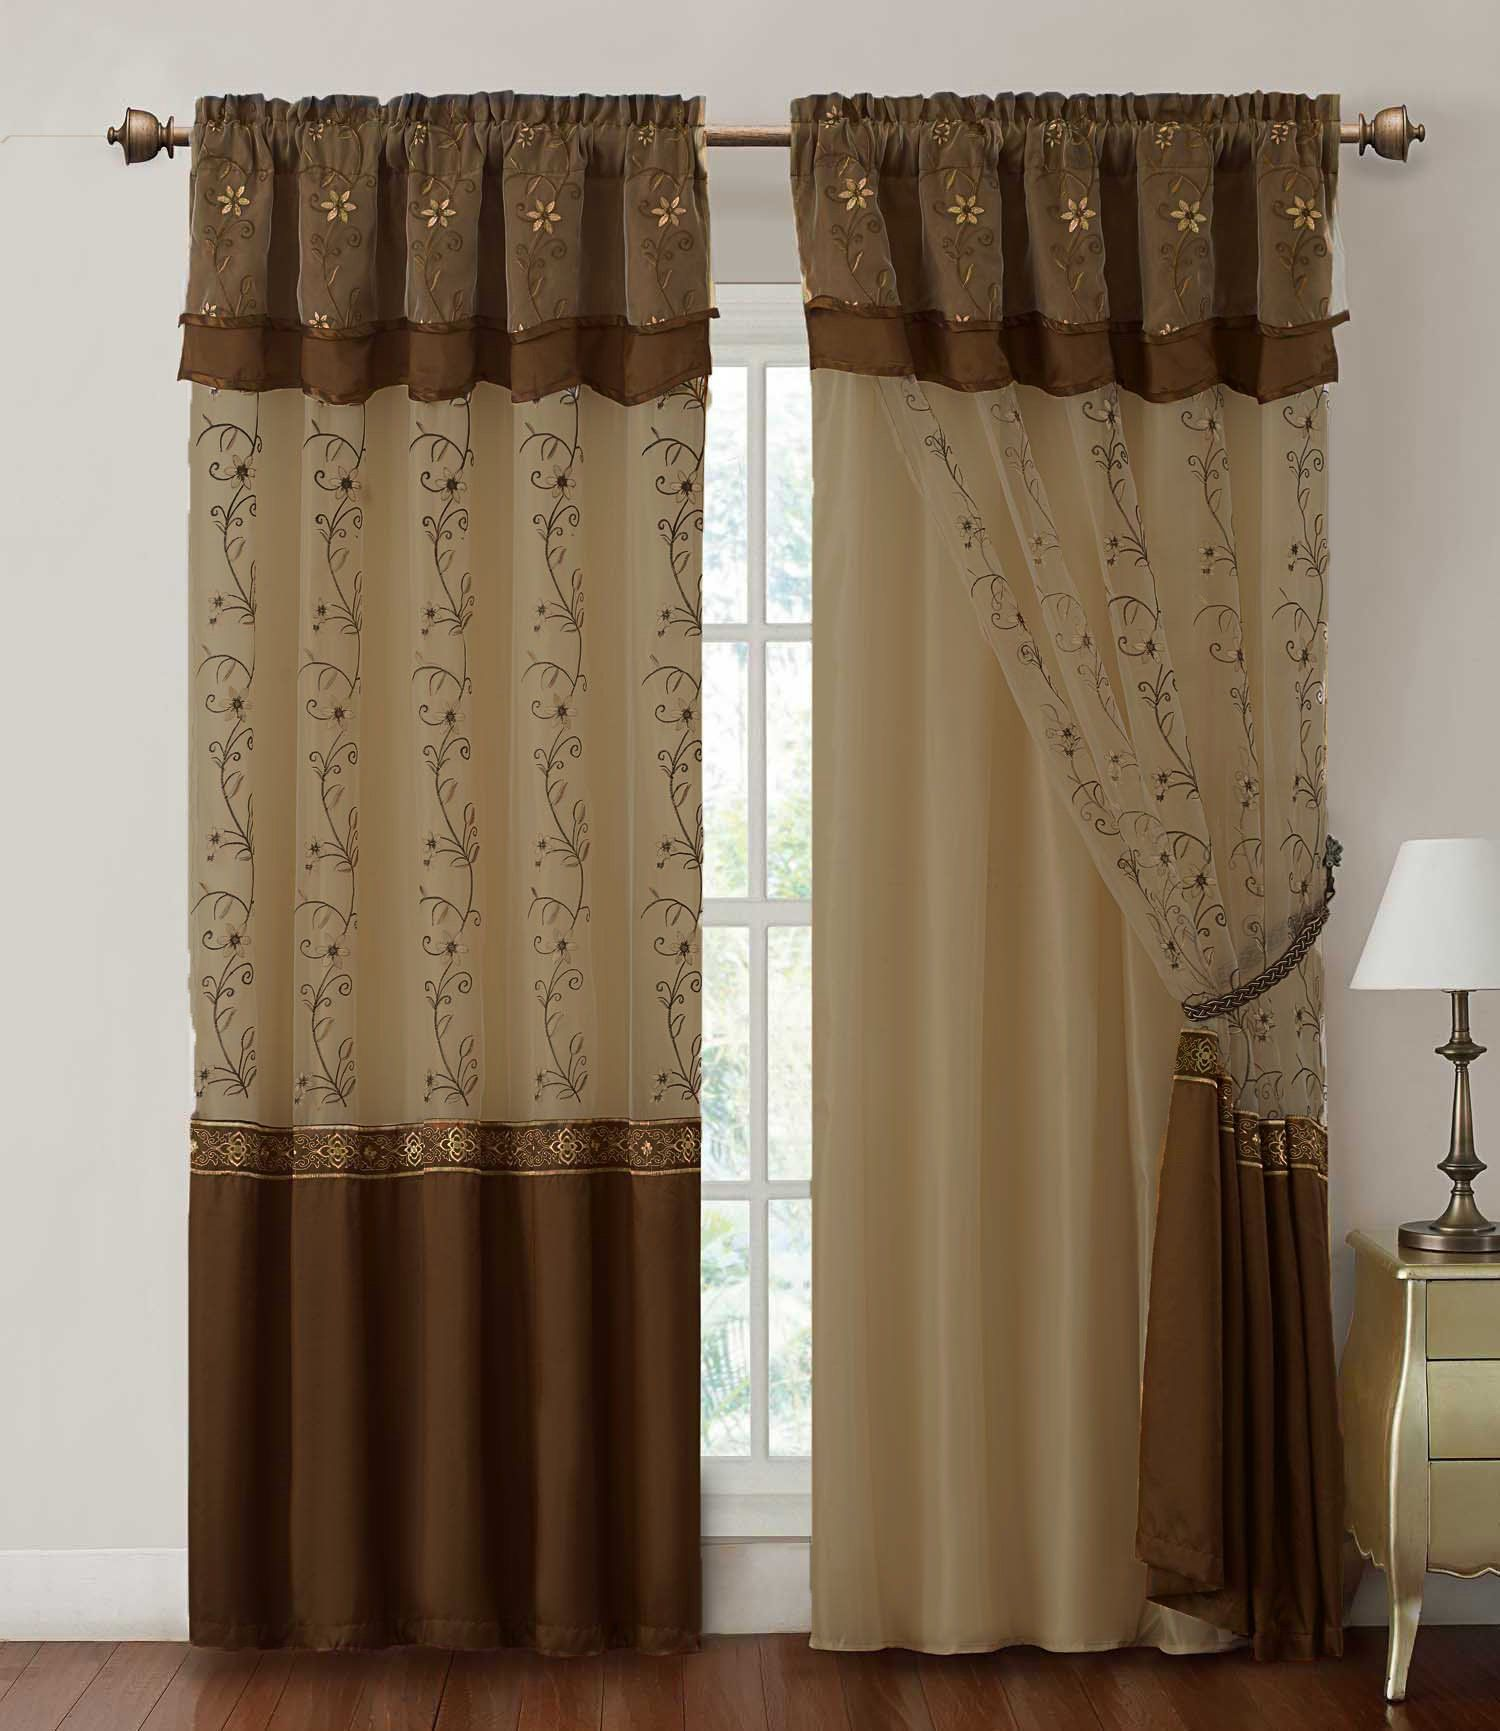 Window Curtain Drapery Sheer Panel One Piece W Attached Backing